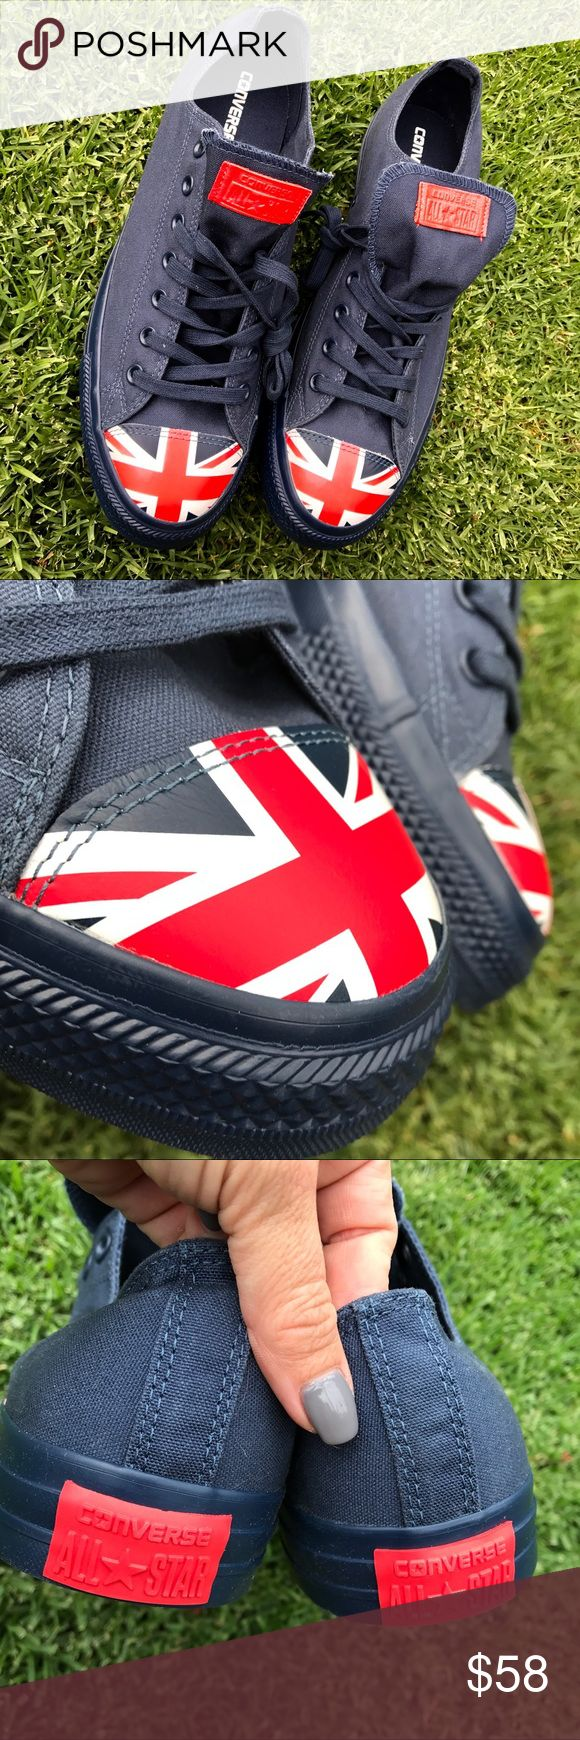 NWB 🇬🇧 UNION JACK LOW TOP CHUCKS SZ 13 MEN New never worn in original CONVERSE box size 13 MENS! ships same or next day from my smoke free home! Bundle items to save! 🇬🇧 AS ALWAYS... 100% AUTHENTIC & DIRECT FROM CONVERSE. Converse Shoes Sneakers